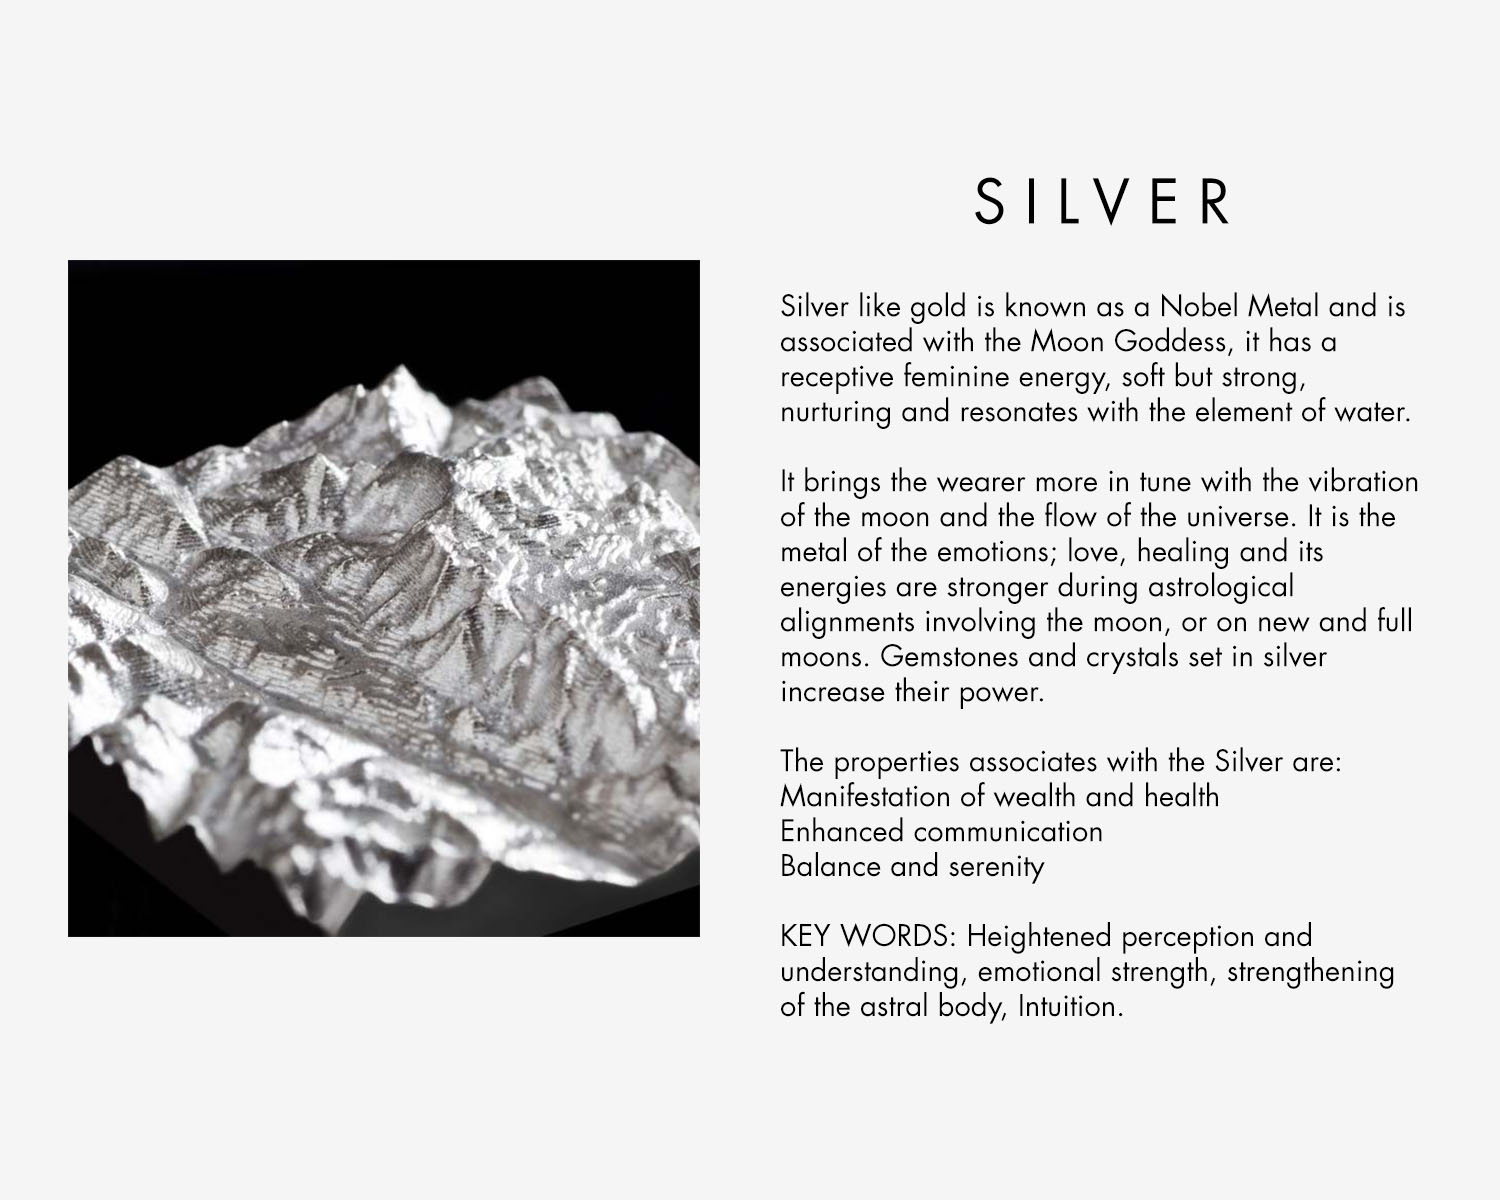 Silver like gold is known as a Nobel Metal and is associated with the Moon Goddess, it has a receptive feminine energy, soft but strong, nurturing and resonates with the element of water. It brings the wearer more in tune with the vibration of the moon and the flow of the universe. It is the metal of the emotions; love, healing and its energies are stronger during astrological alignments involving the moon, or on new and full moons. Gemstones and crystals set in silver increase their power. The properties associates with the Silver are: Manifestation of wealth and health Enhanced communication Balance and serenity KEY WORDS: Heightened perception and understanding, emotional strength, strengthening of the astral body, Intuition.